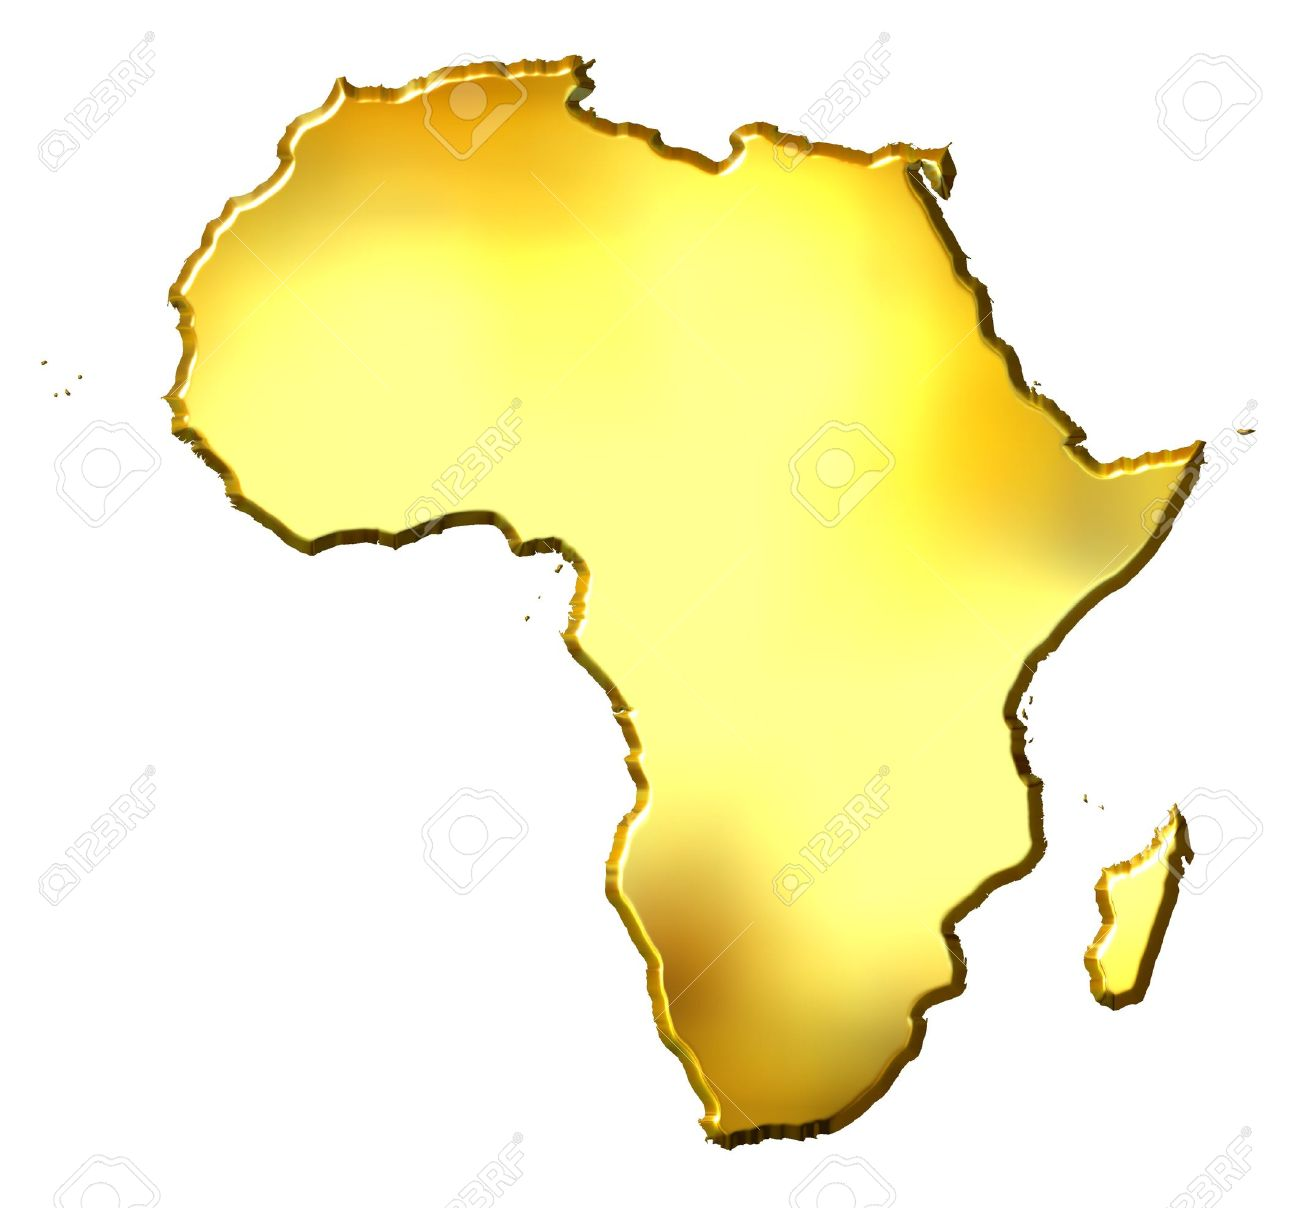 Africa 3d Golden Map Stock Photo, Picture And Royalty Free Image